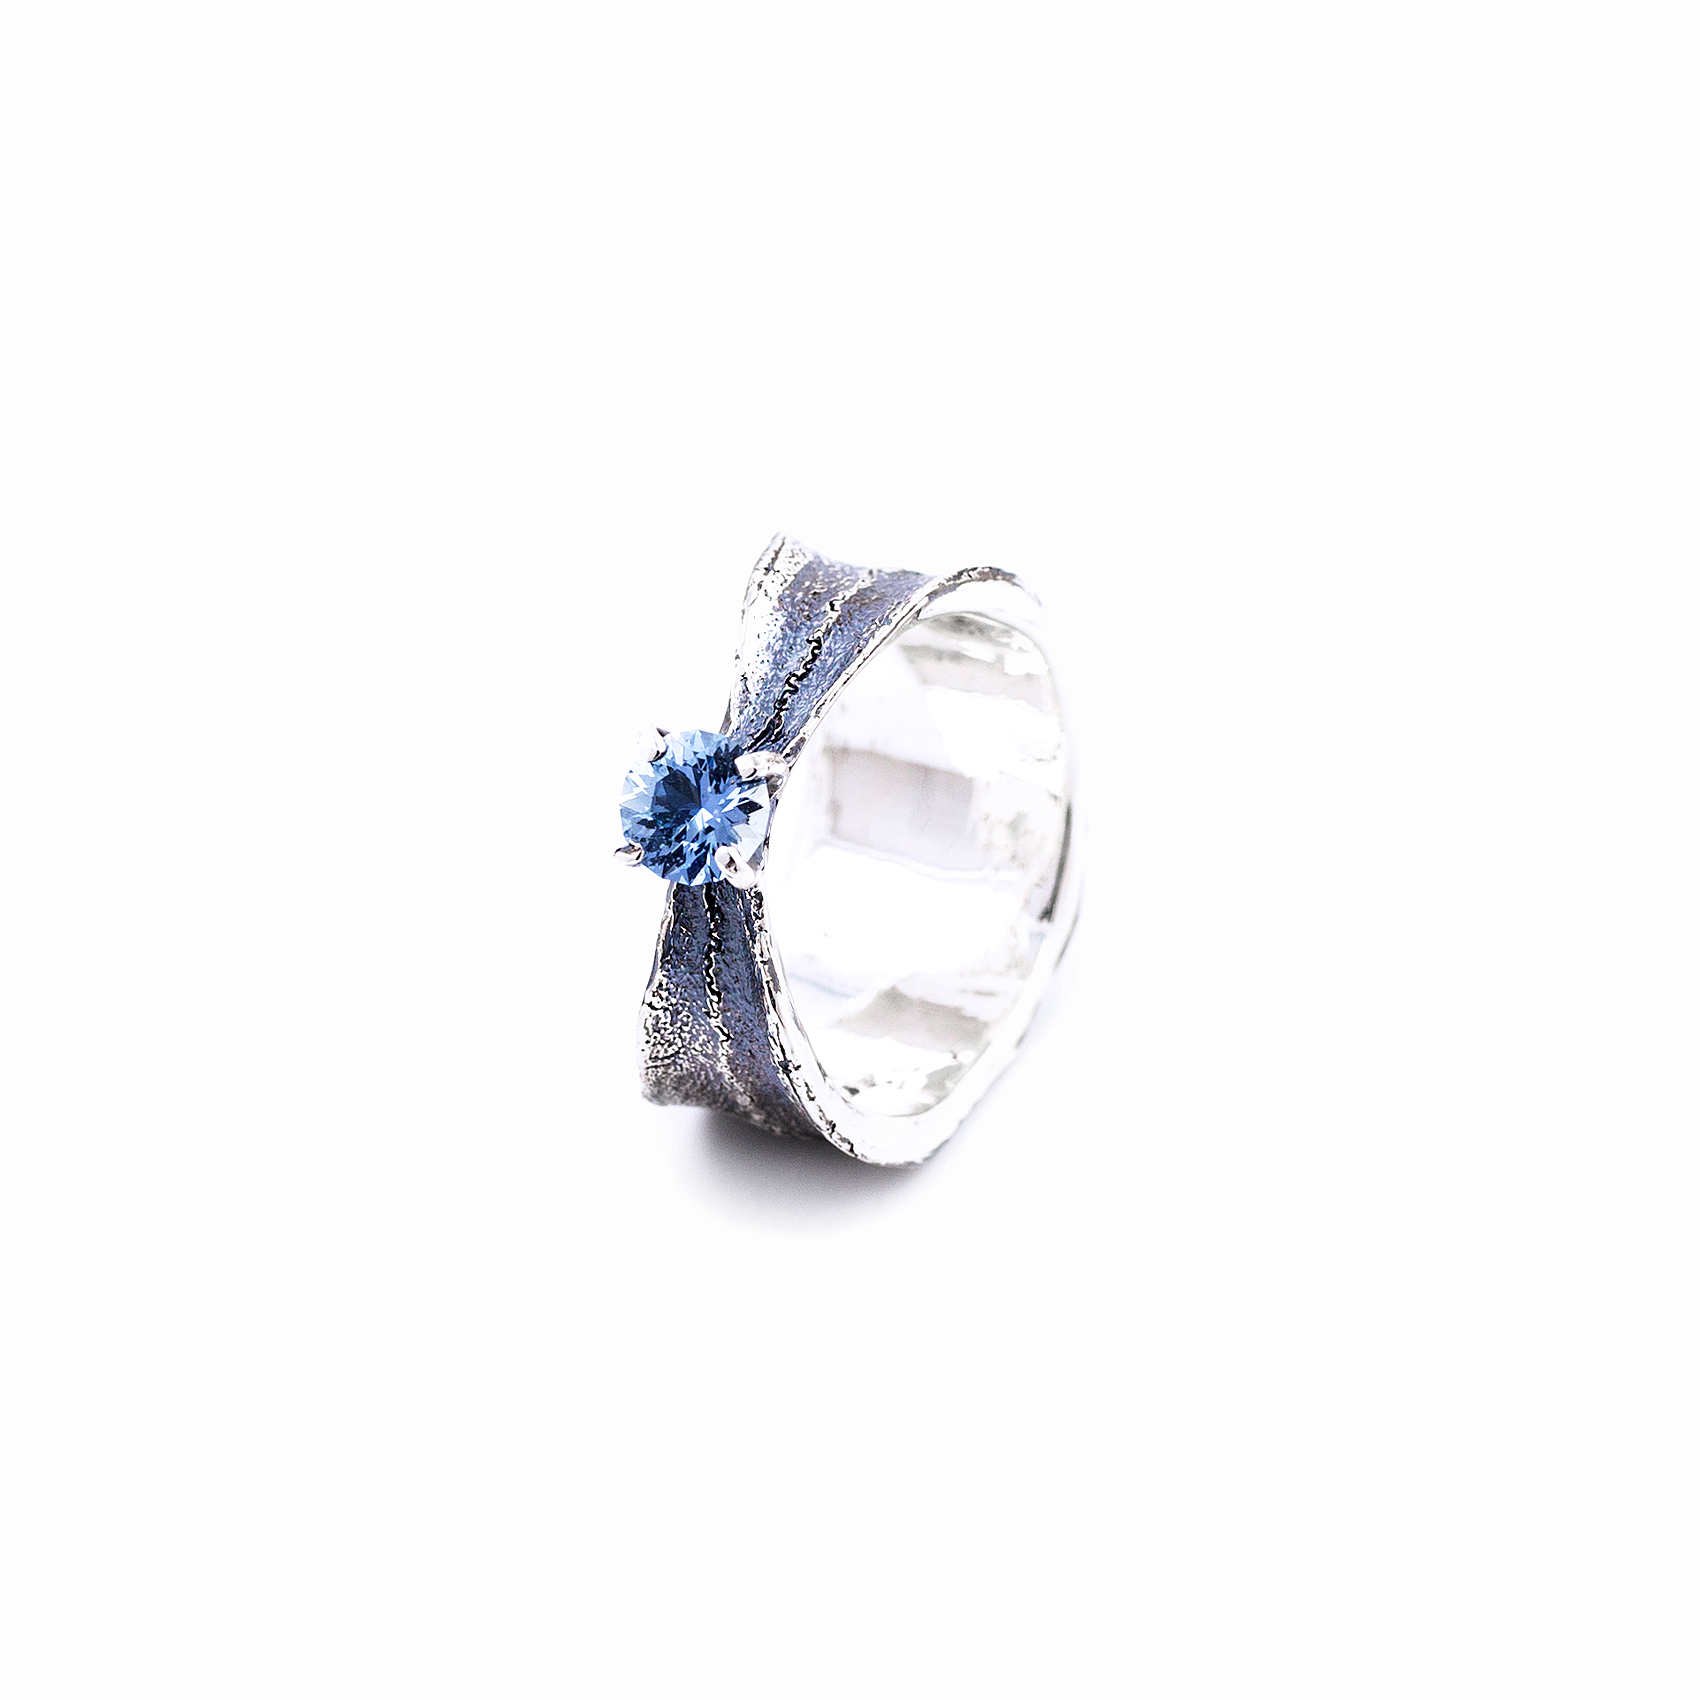 Fused Ring   Sterling silver, sapphire.